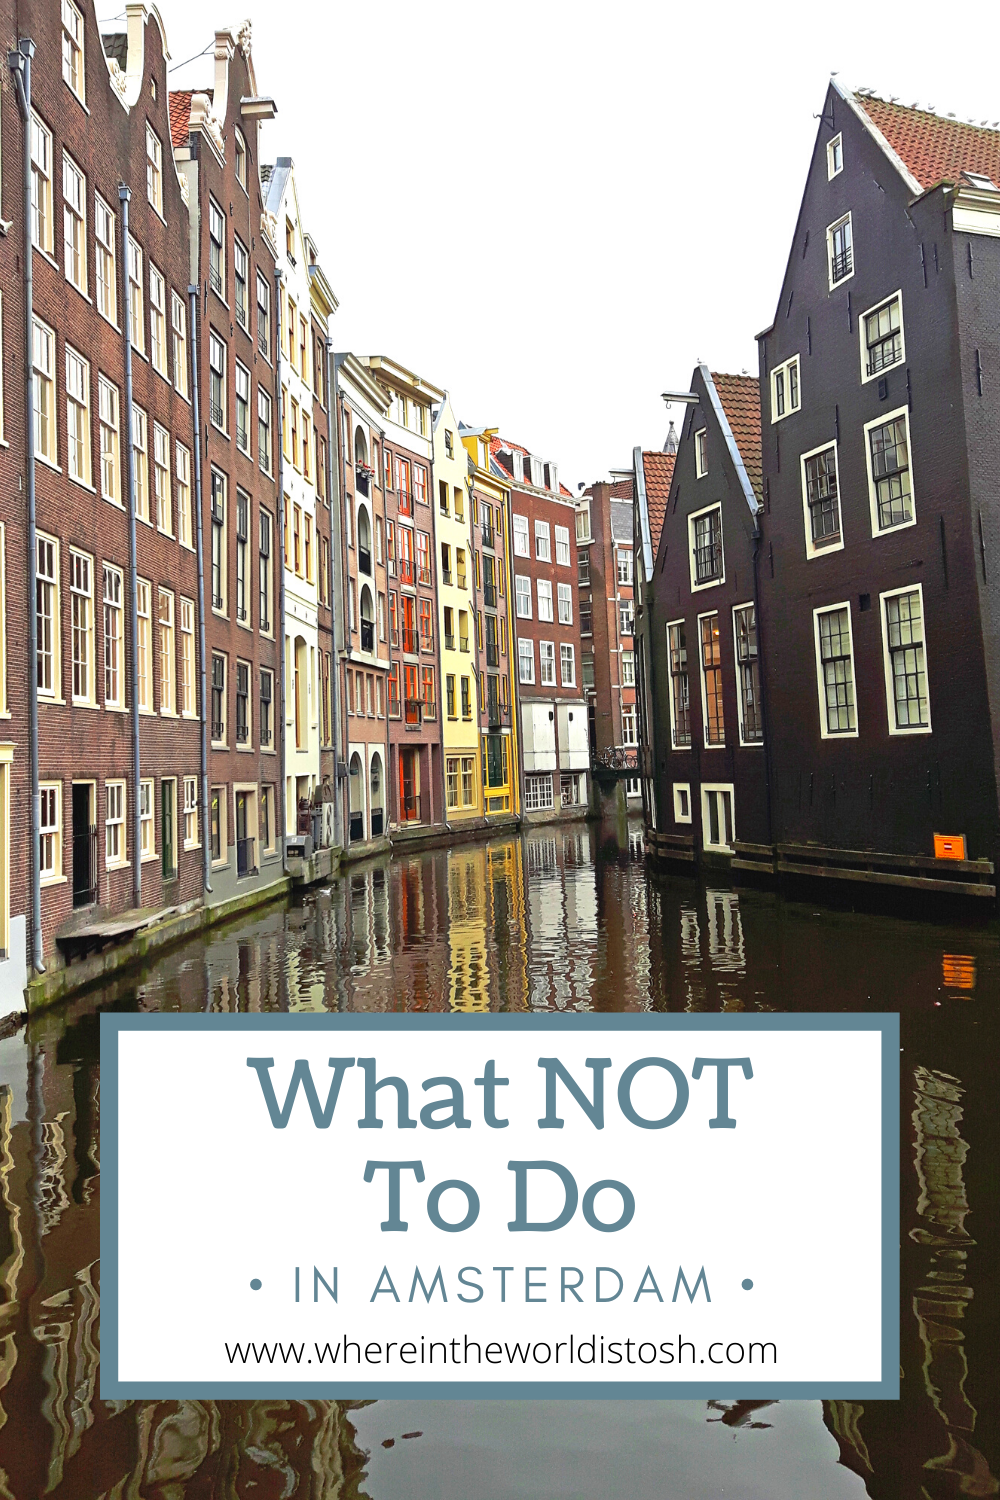 What NOT To Do In Amsterdam